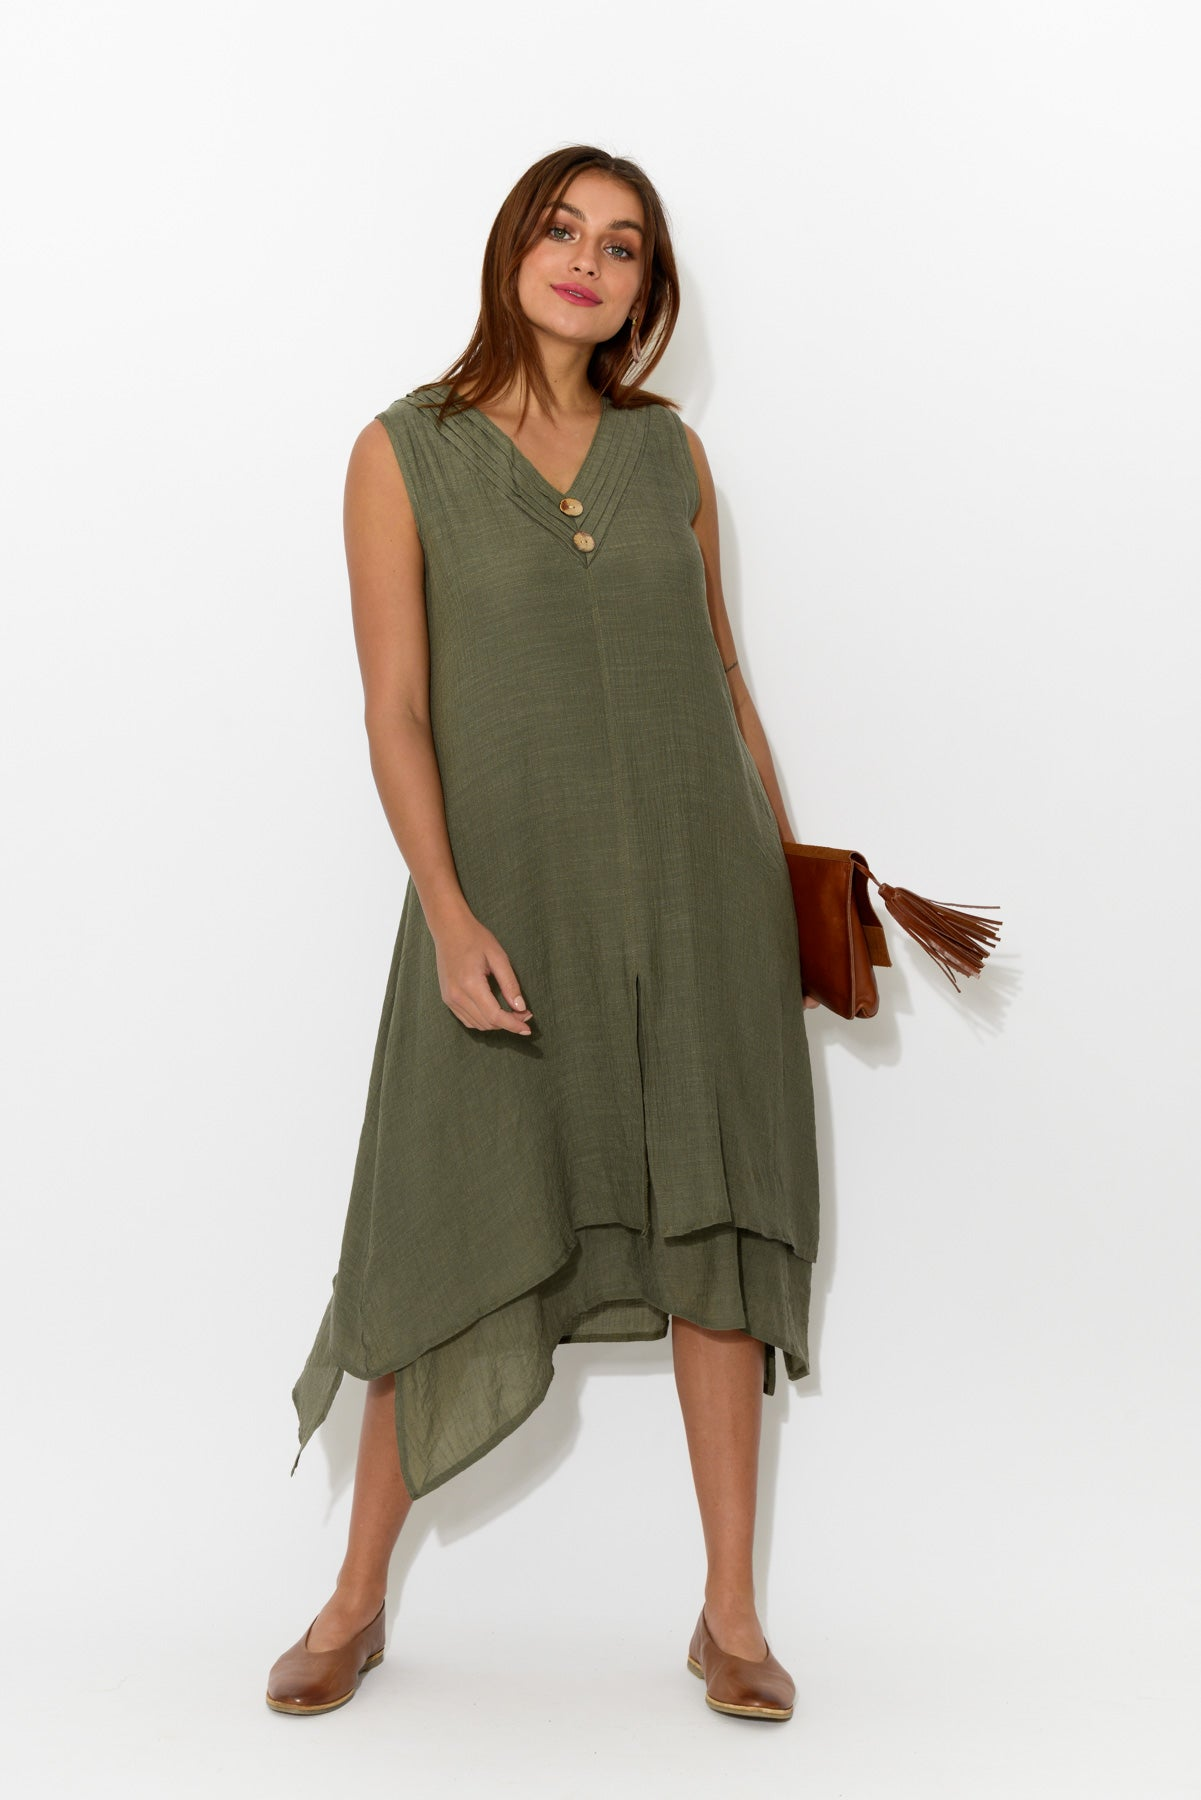 Adina Khaki Layered Dress - Blue Bungalow